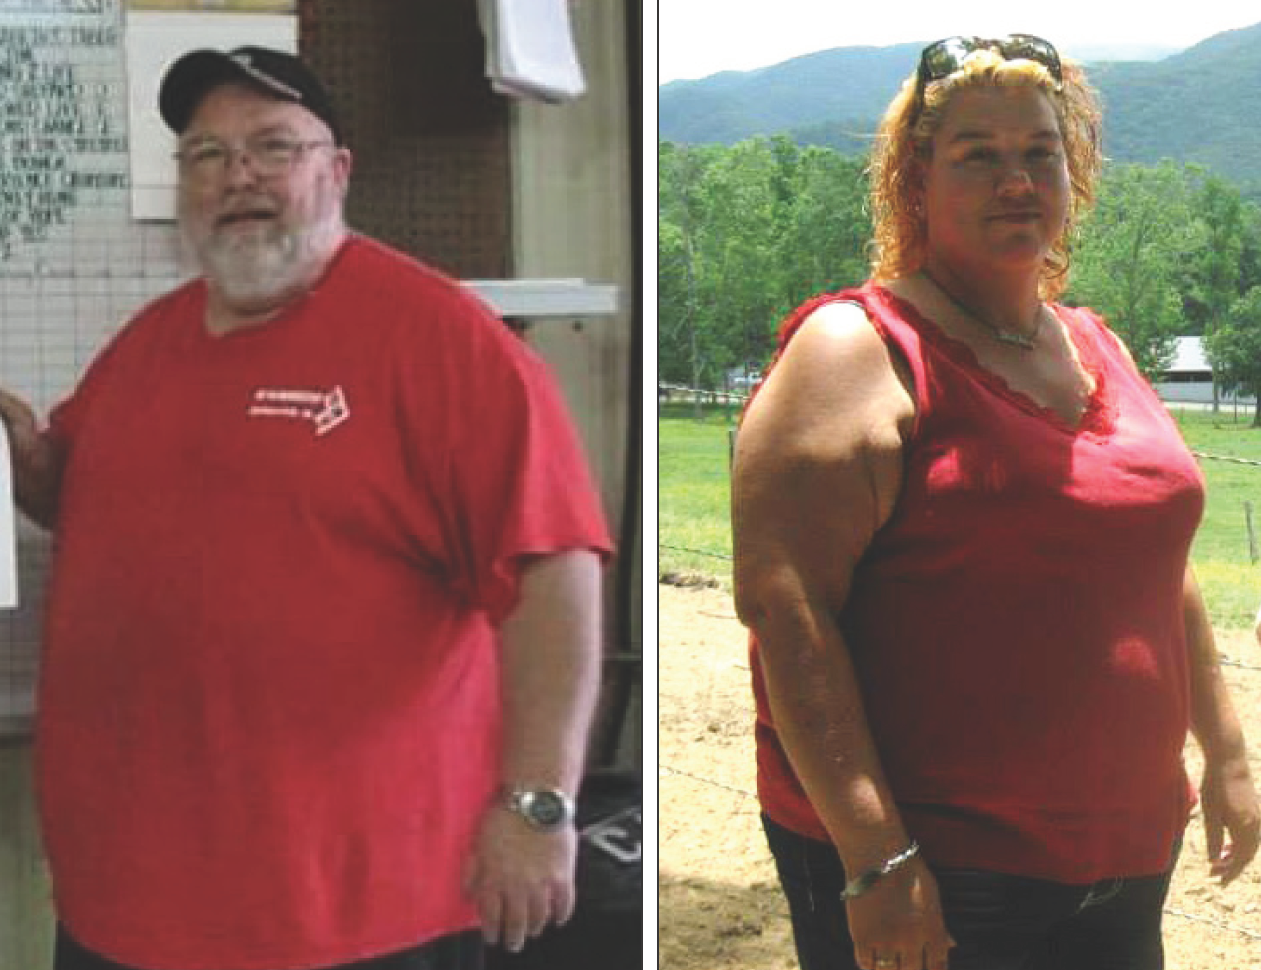 Dwayne and Allenna Lingers before bariatric surgery